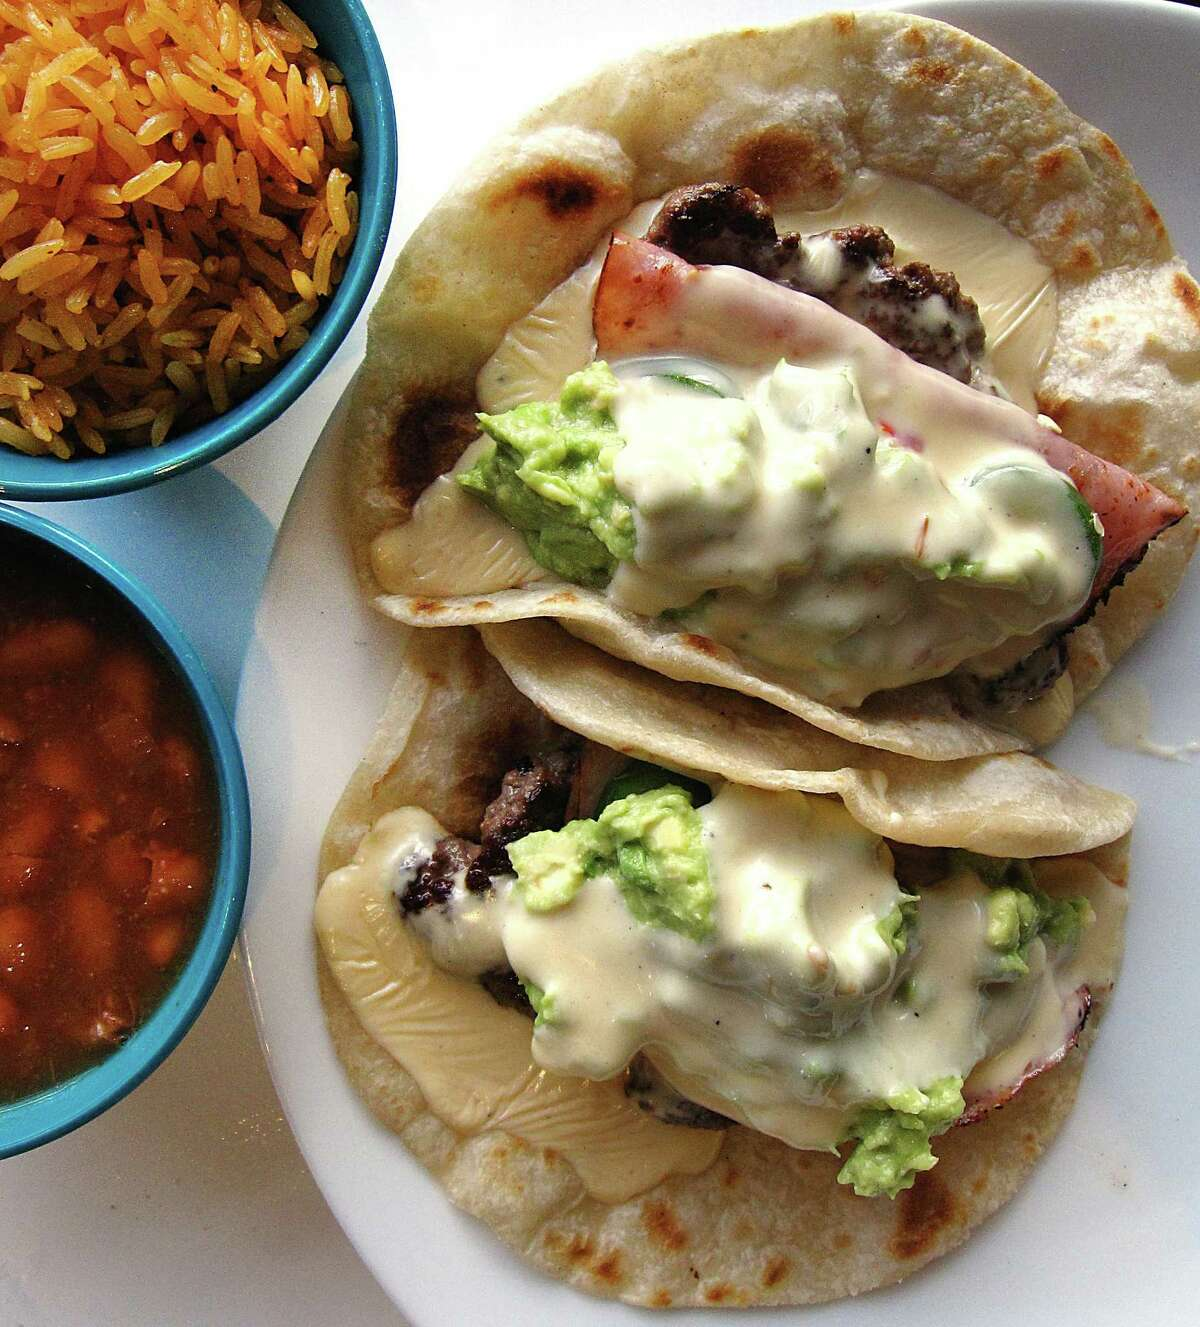 Mexican cheeseburger tacos with ground beef, grilled ham, queso, avocado and jalapeños, served with rice and beans, from Chisme.